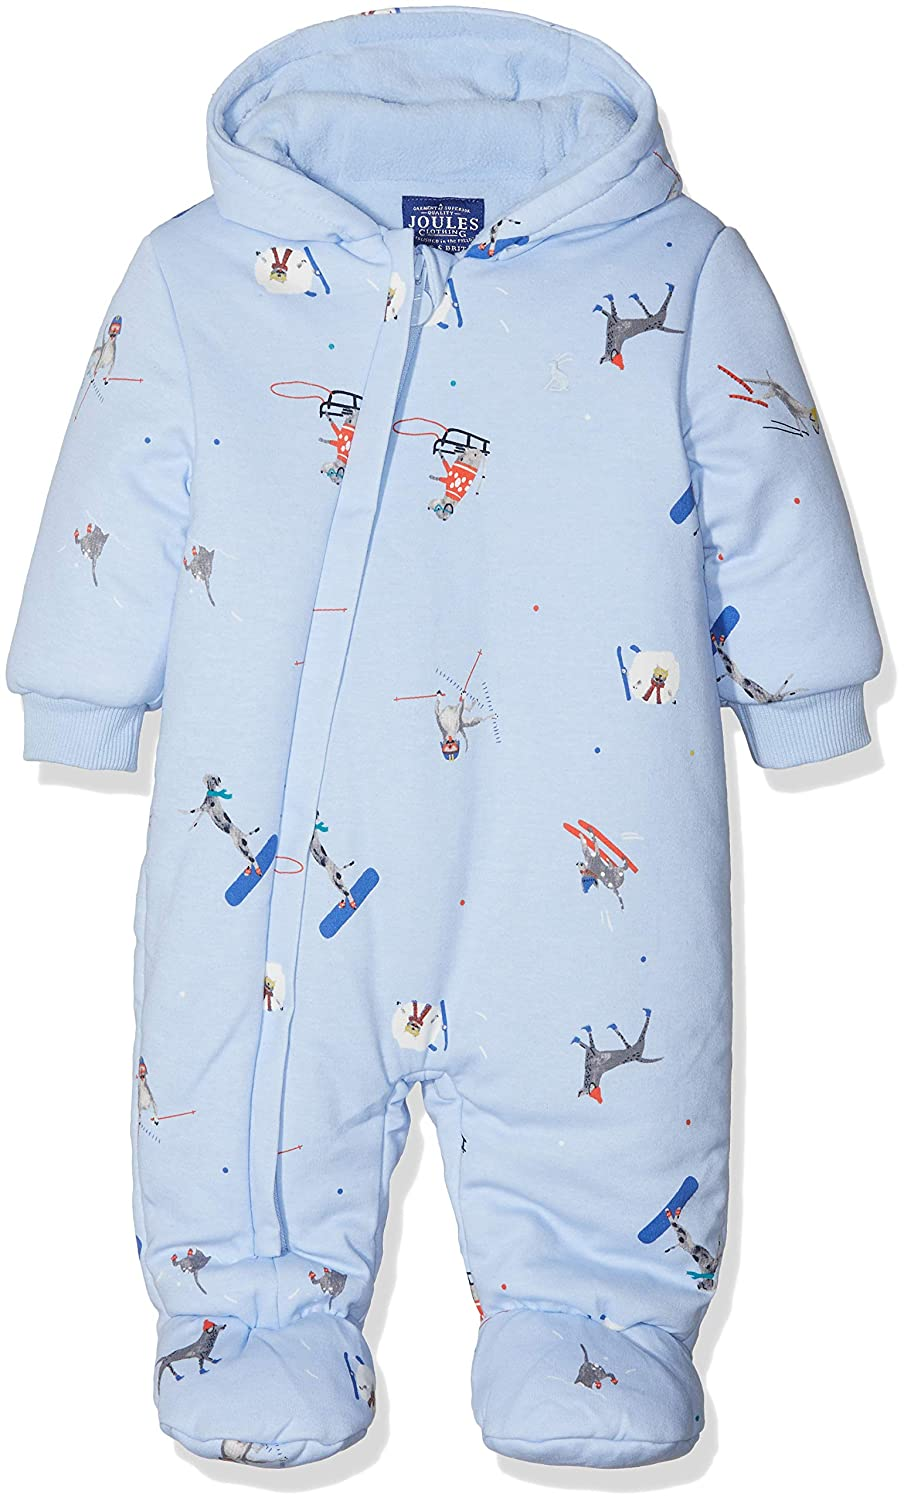 Joules Baby Boys' Snug Snowsuit